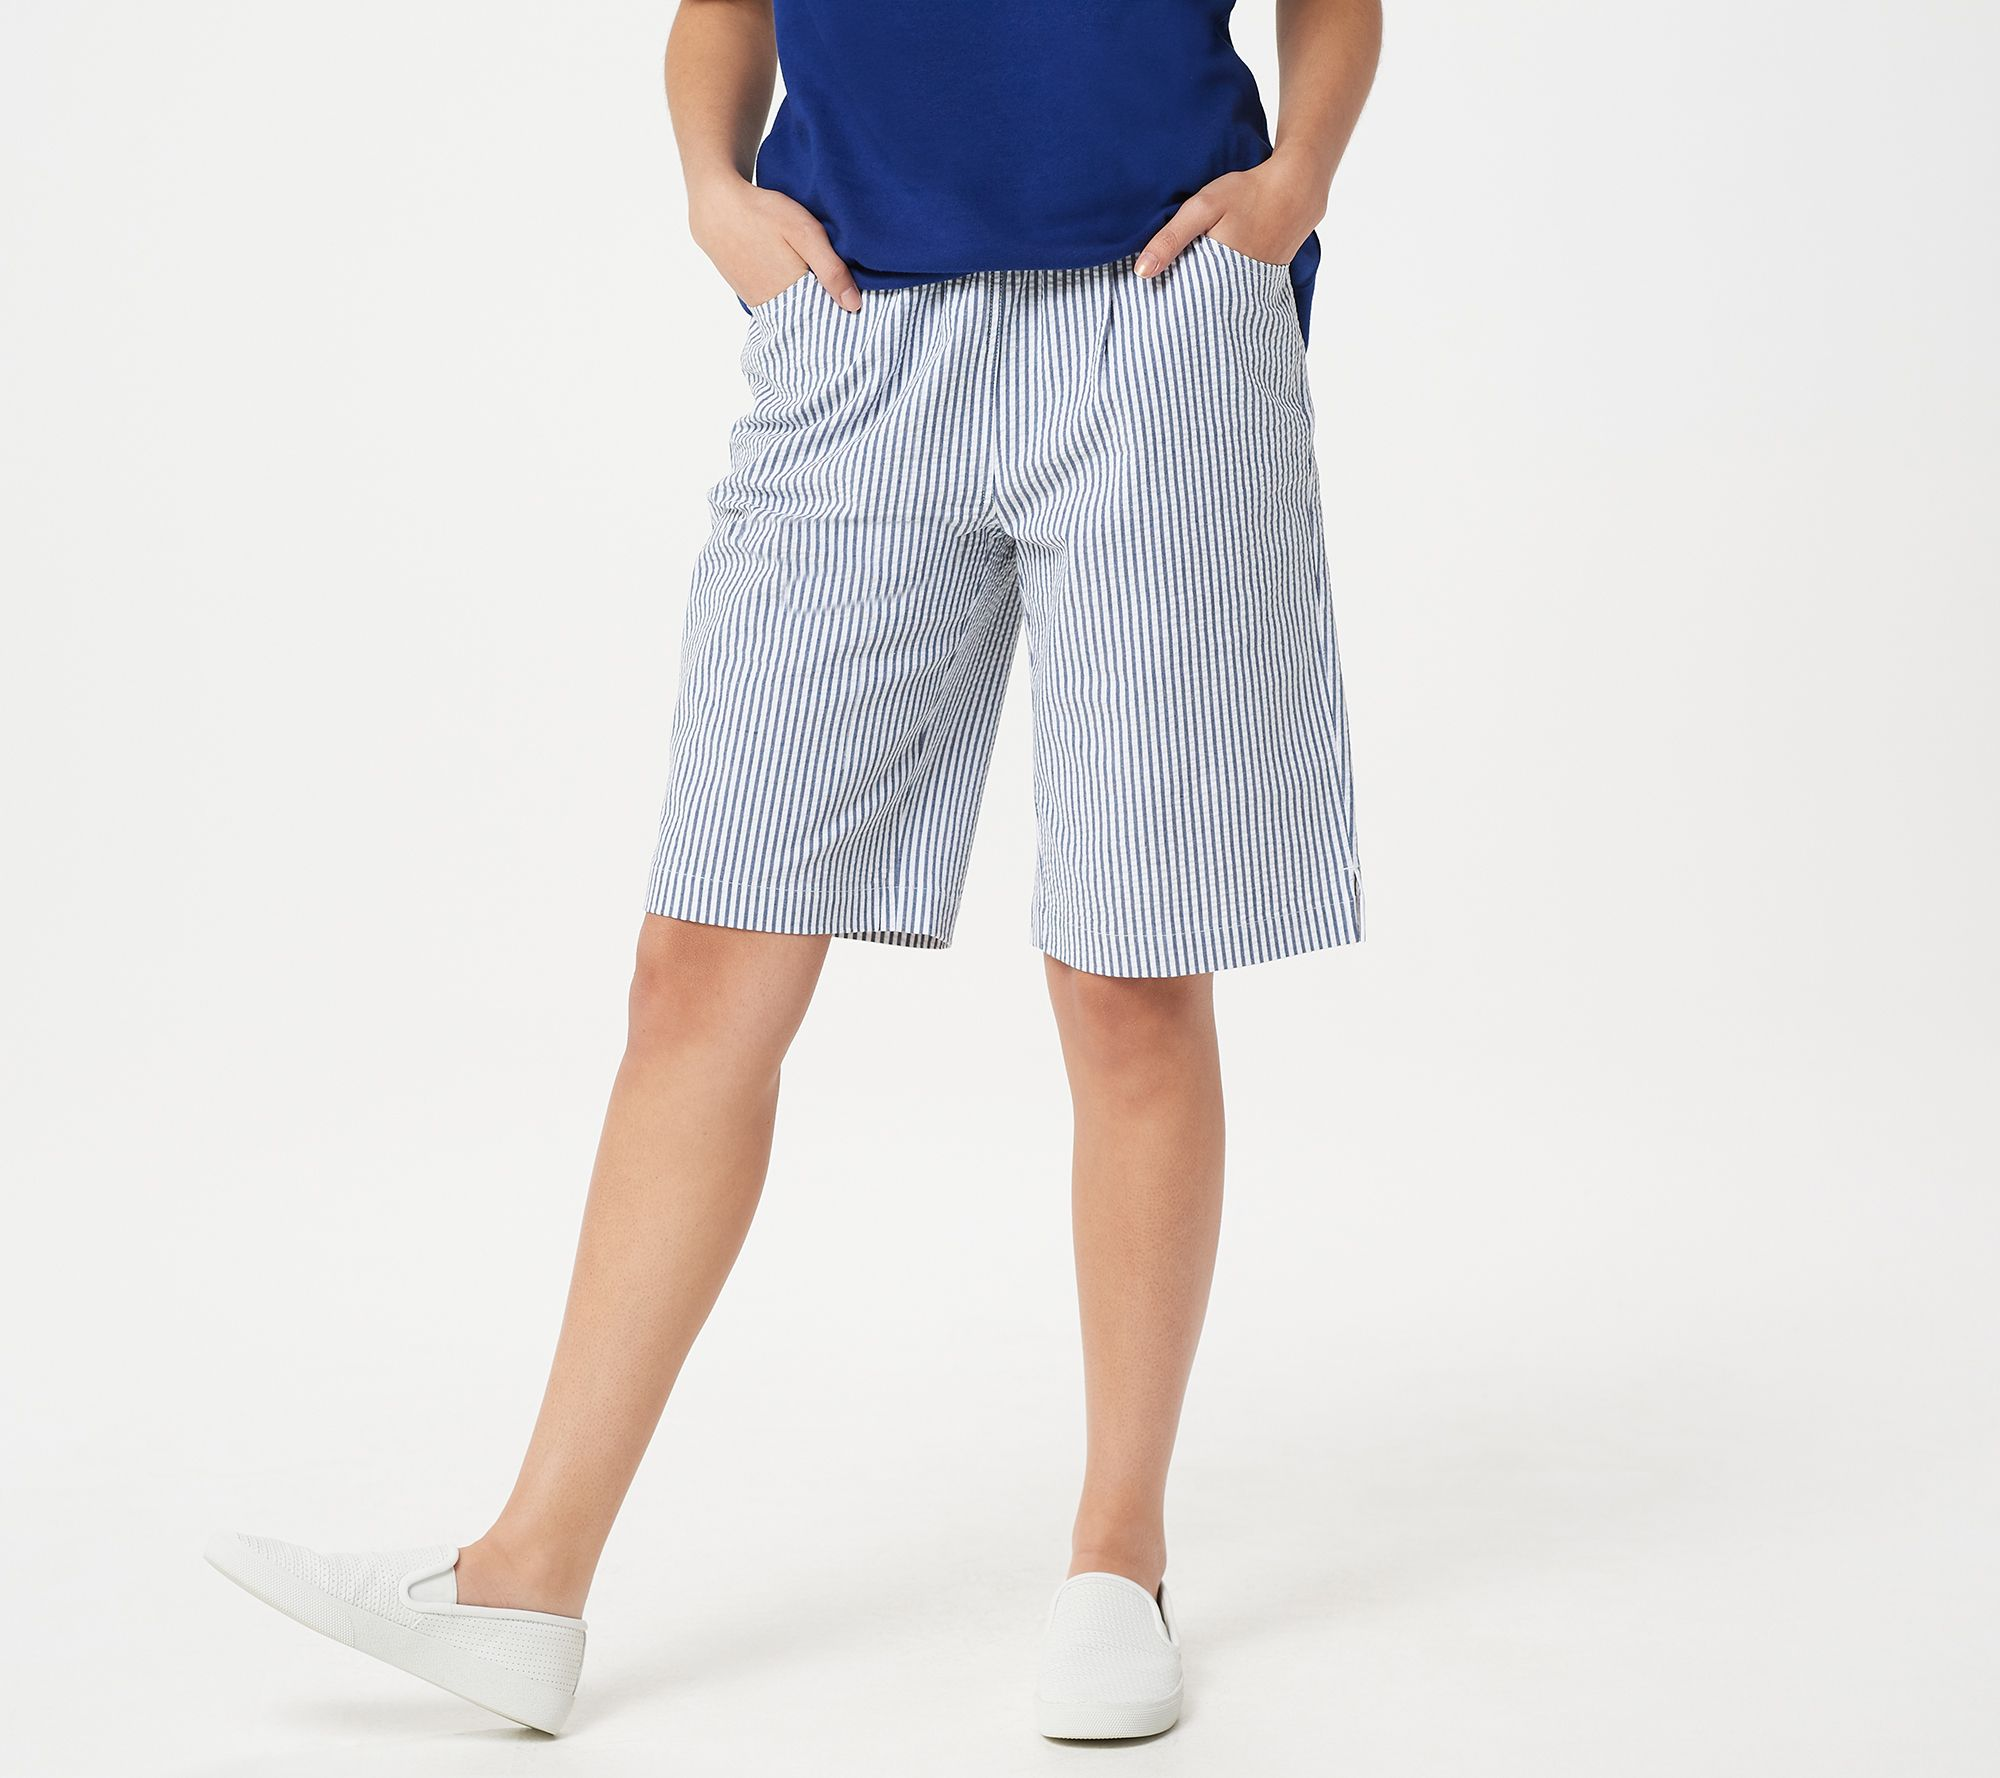 buy best dirt cheap top-rated newest Quacker Factory Stretch Seersucker Shorts with Pockets — QVC.com